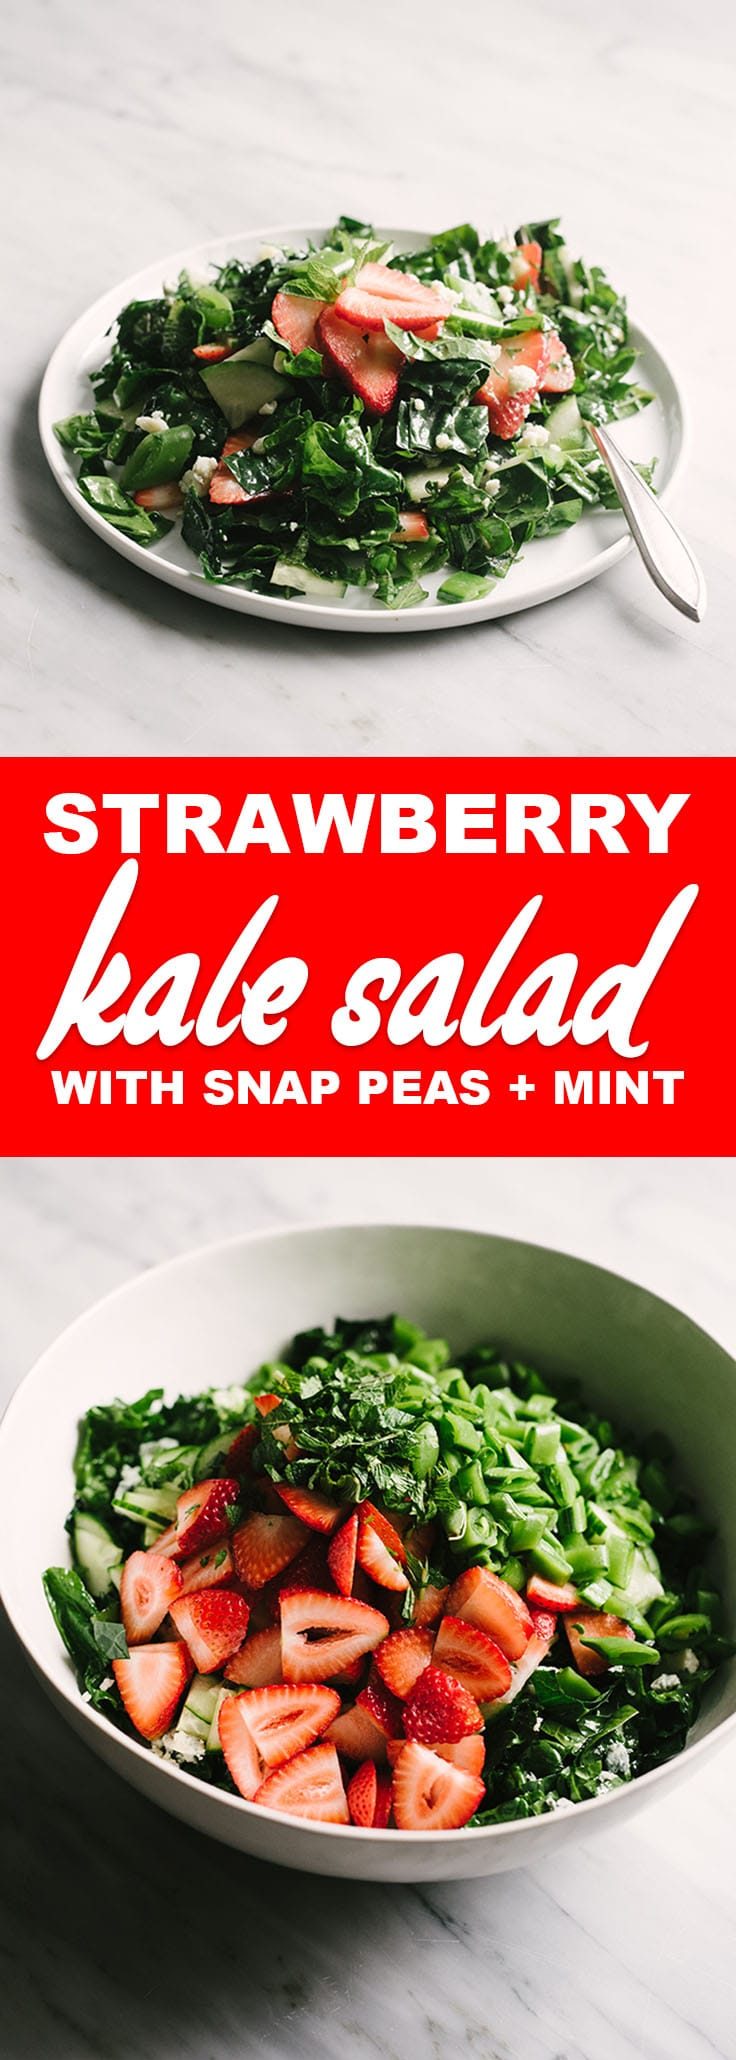 This strawberry kale salad is flavor packed nutritional powerhouse. Take advantage of best of spring produce with this healthy, seasonal spring salad! #salad #vegetarian #whole30 #spring #kale #strawberries